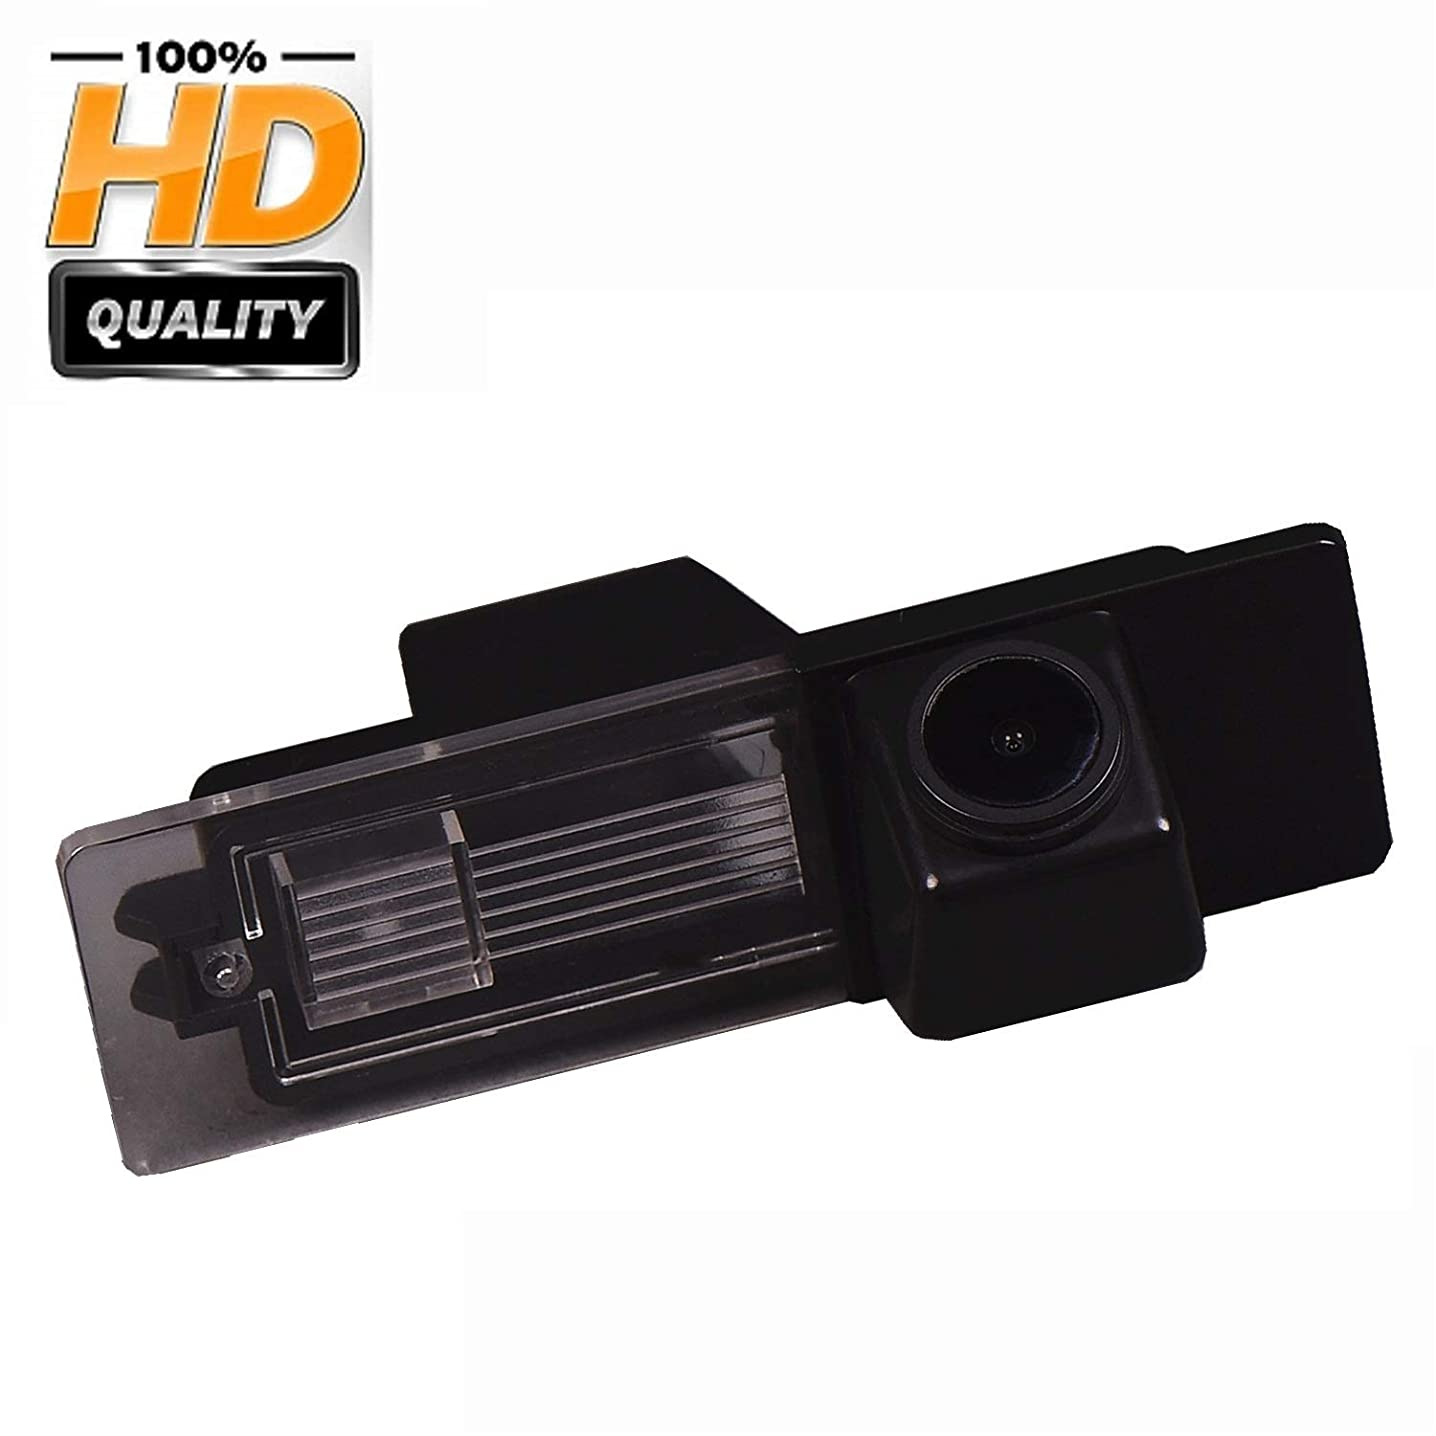 Rear Reversing Backup Camera Rearview License Plate Camera Night Vision Ip68 Waterproof for BMW 1 Series 120i E81 E87 F20 135i 640I